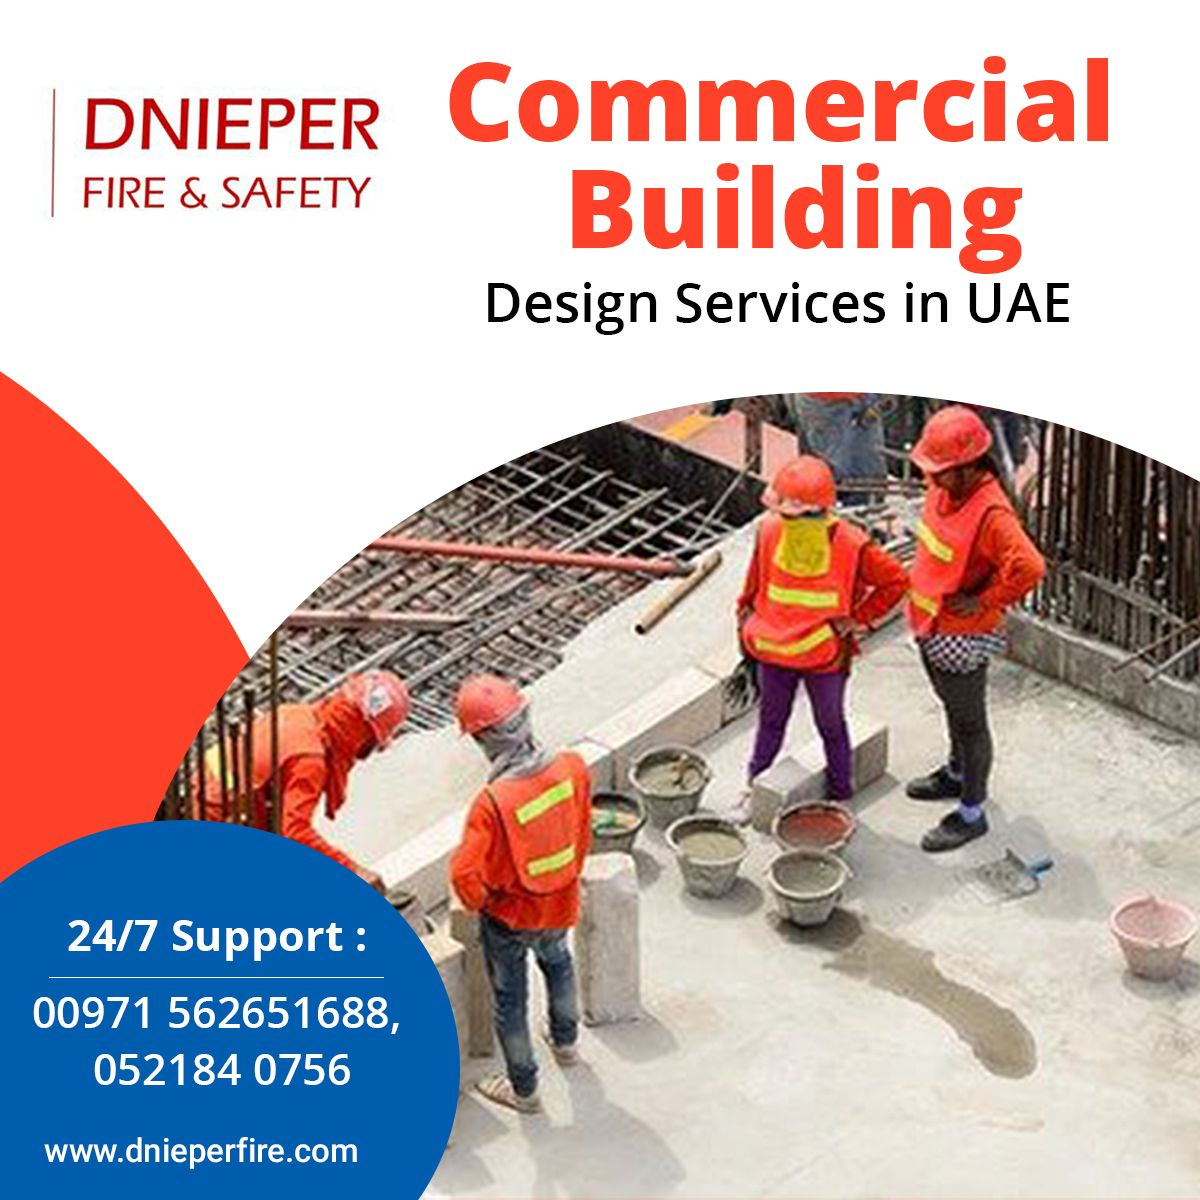 Dnieper is UAE based inspection, verification, testing and